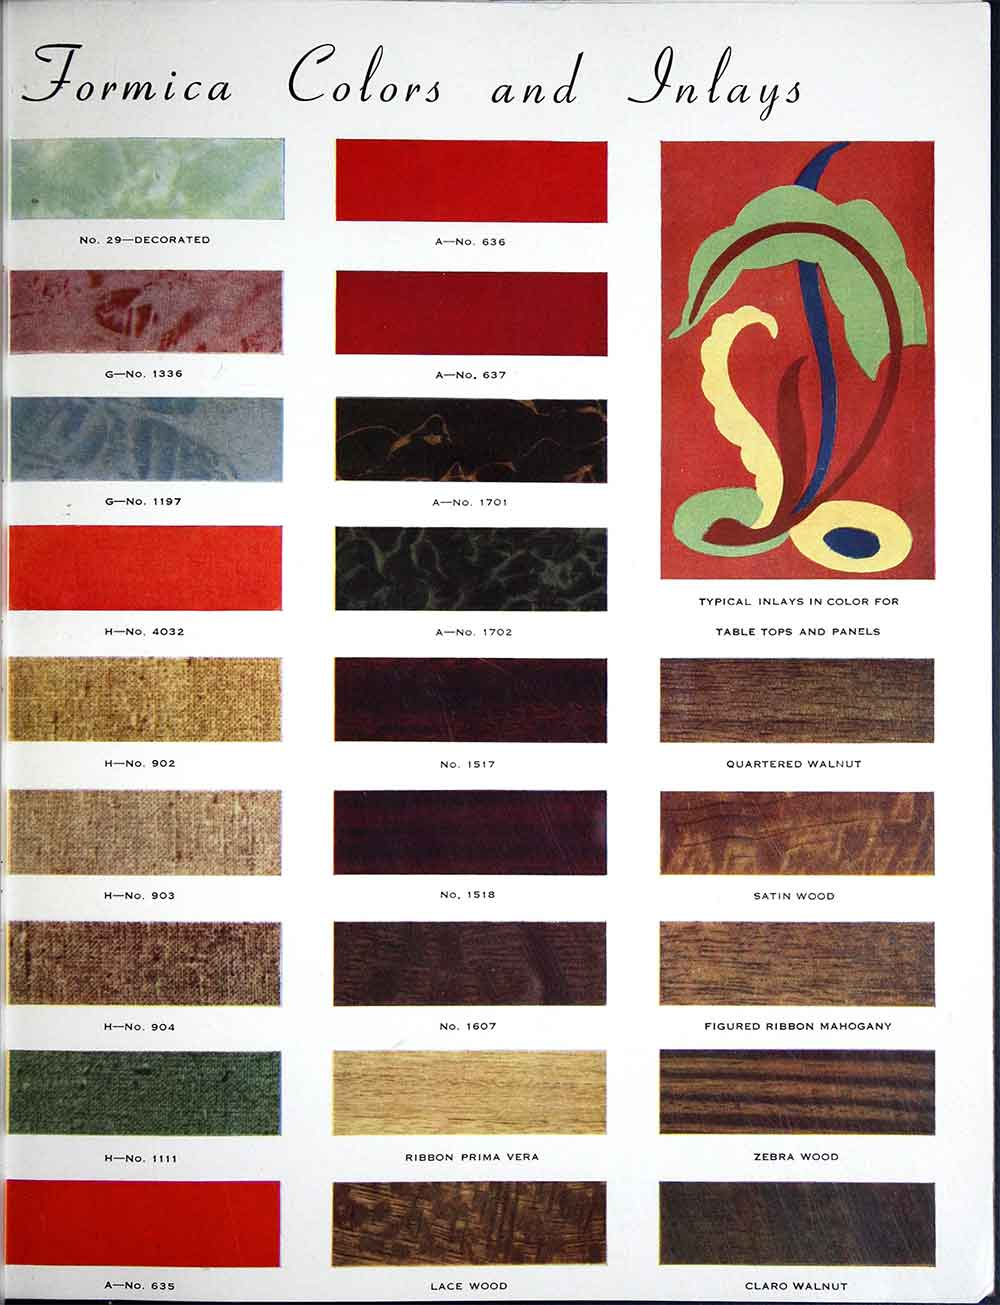 Formica Catalog From 1938